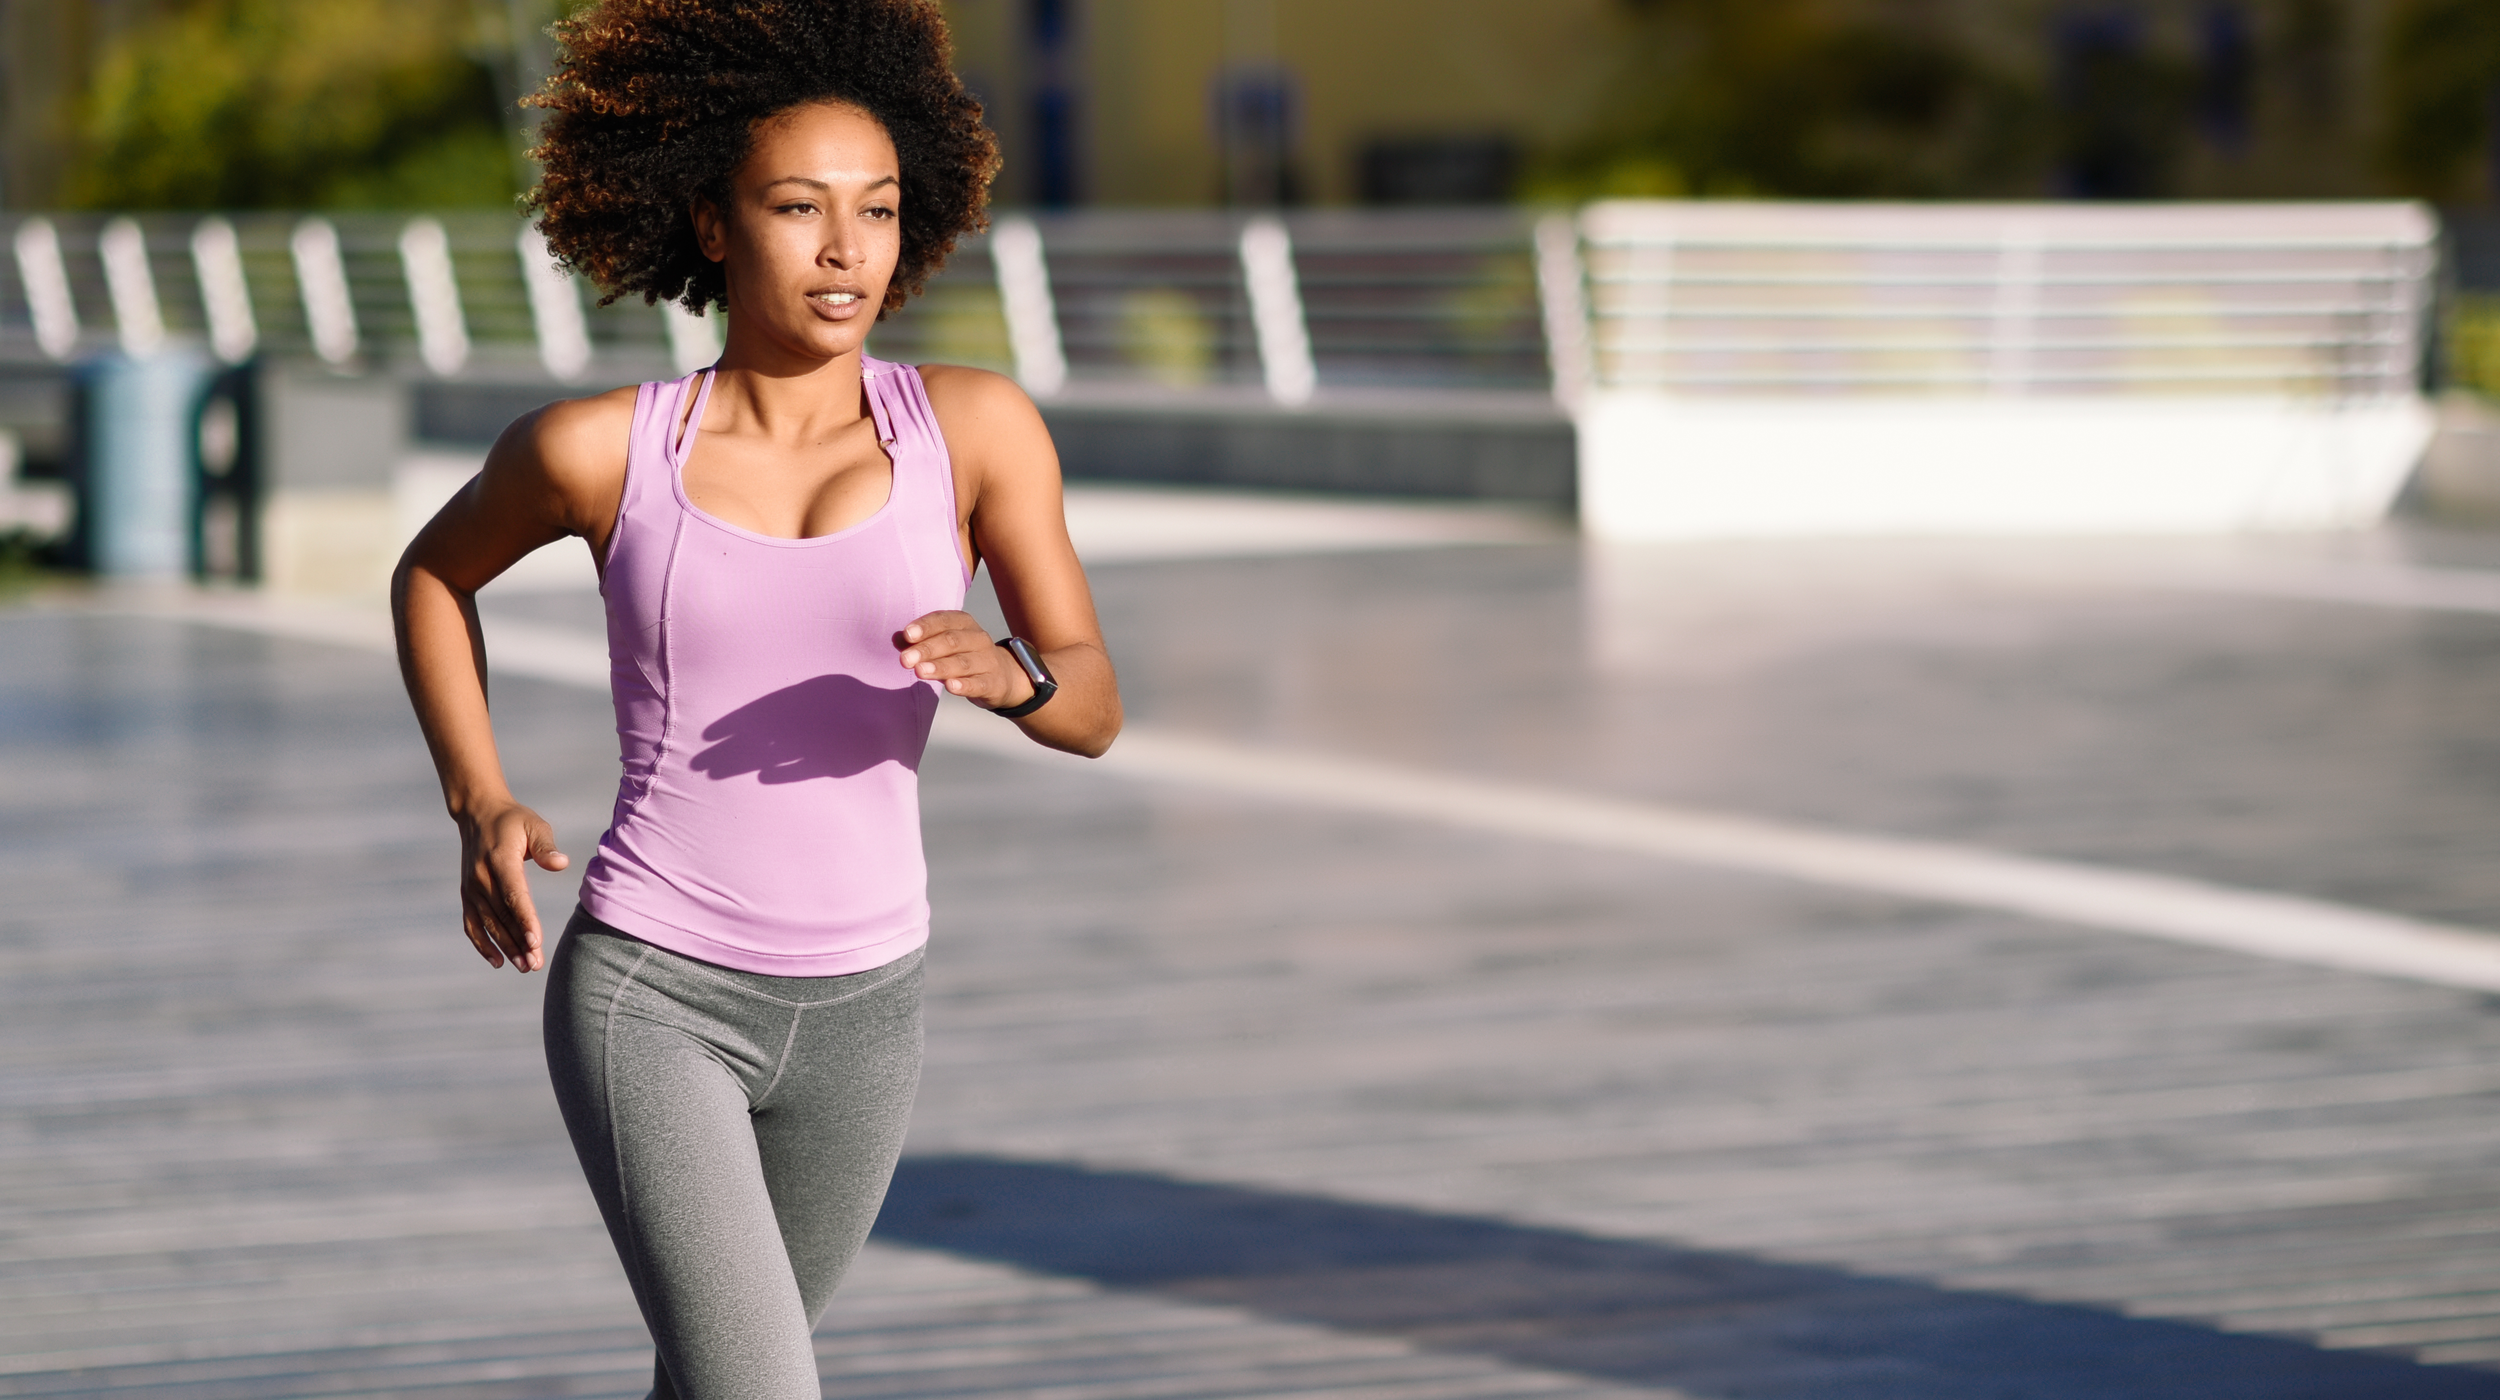 The Pros and Cons of Incorporating Cardio Into Your Workout Routine